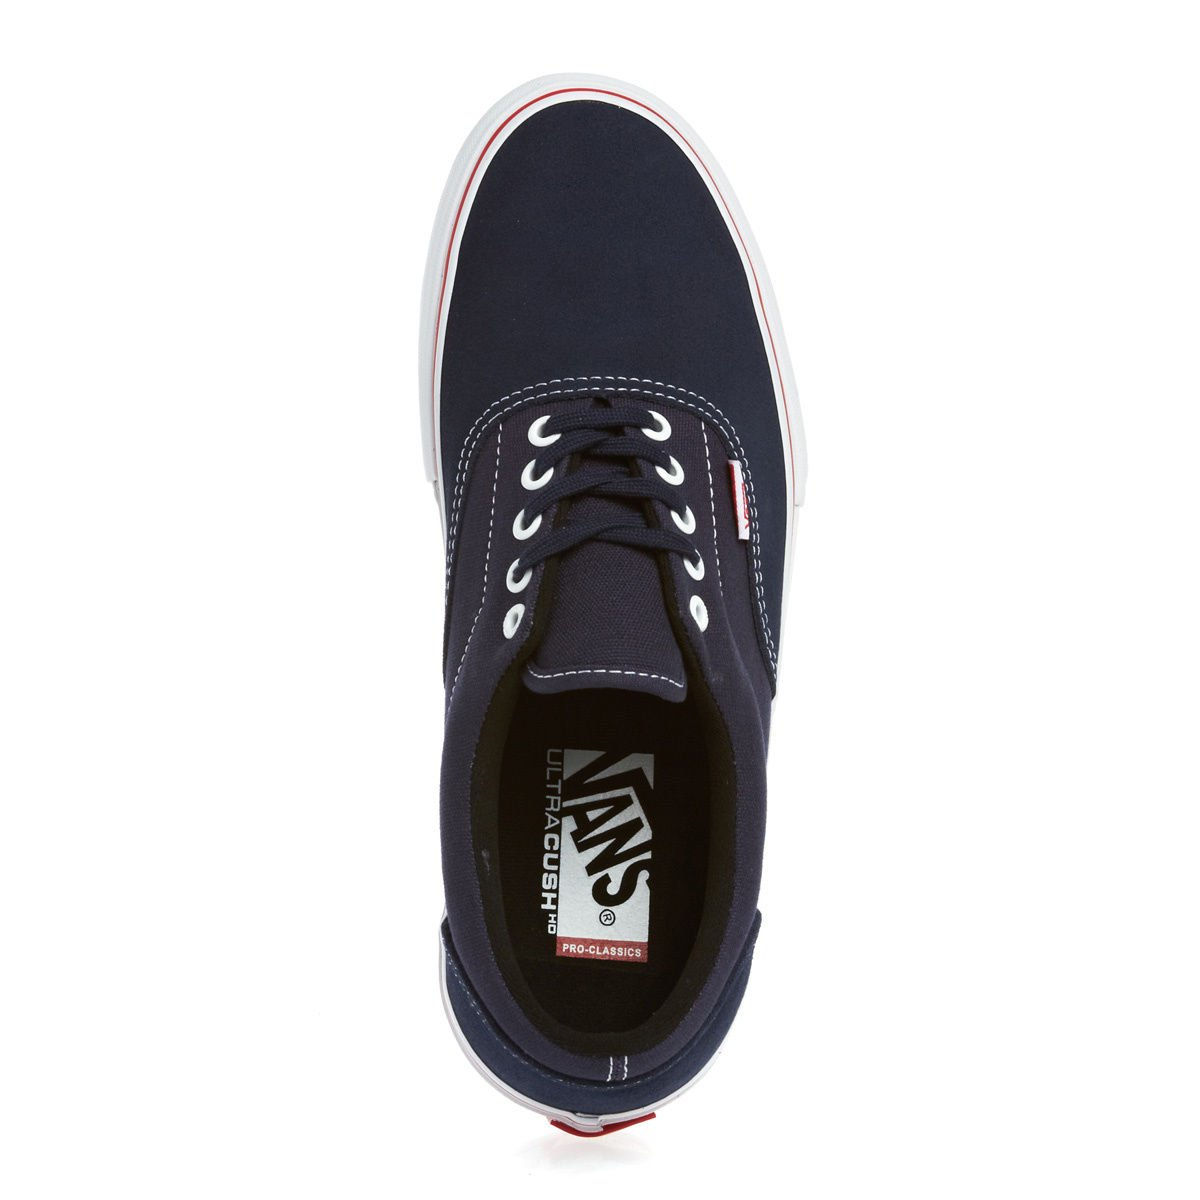 4d1e950a8d Vans Pro Skate Men s Era Pro 10.5 Red Navy  Amazon.co.uk  Shoes   Bags